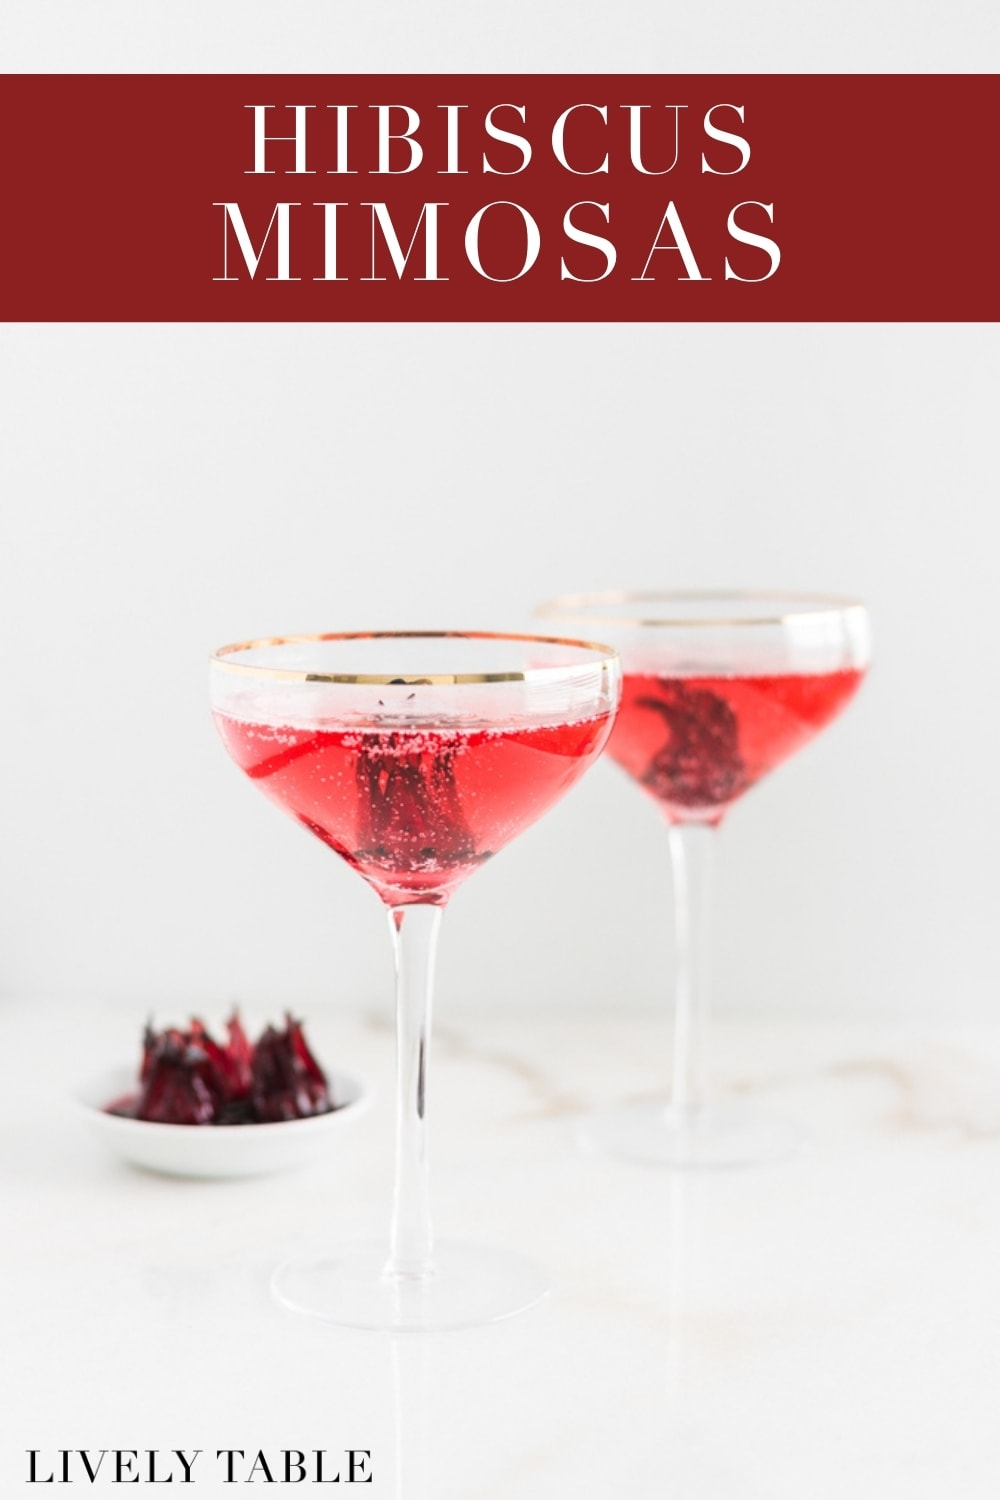 Hibiscus Mimosas areso pretty and easy to make for all of your spring and summer celebrations! #springcocktails #hibiscusmimosa #hibiscuscocktails #cocktails #easycocktails